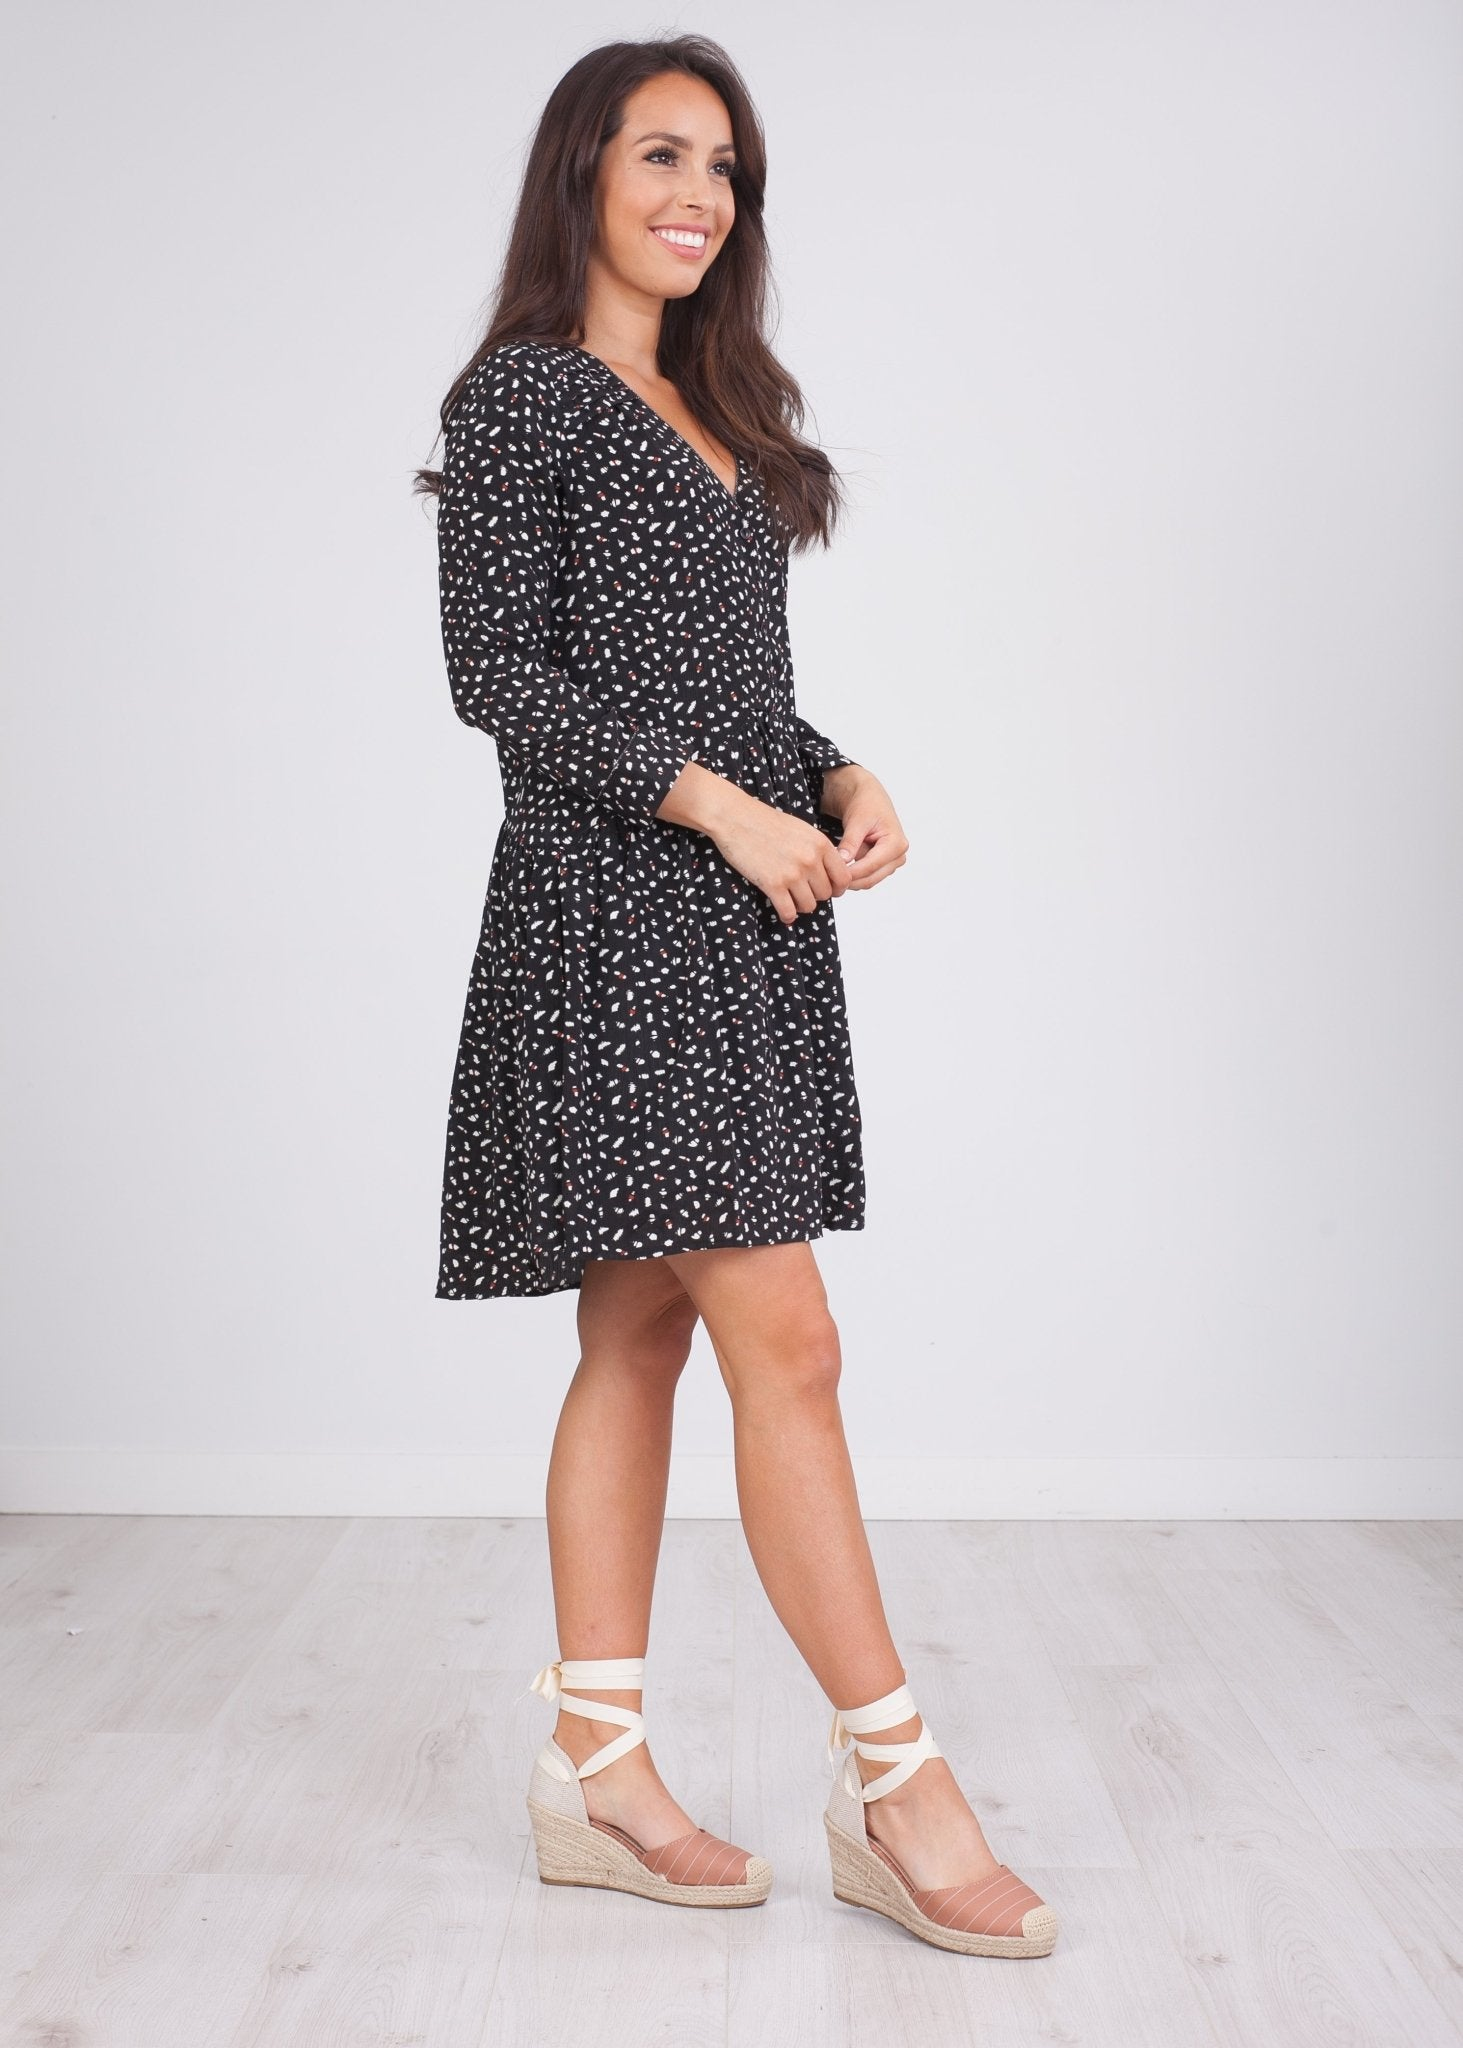 Cherie Black Printed Dress - The Walk in Wardrobe